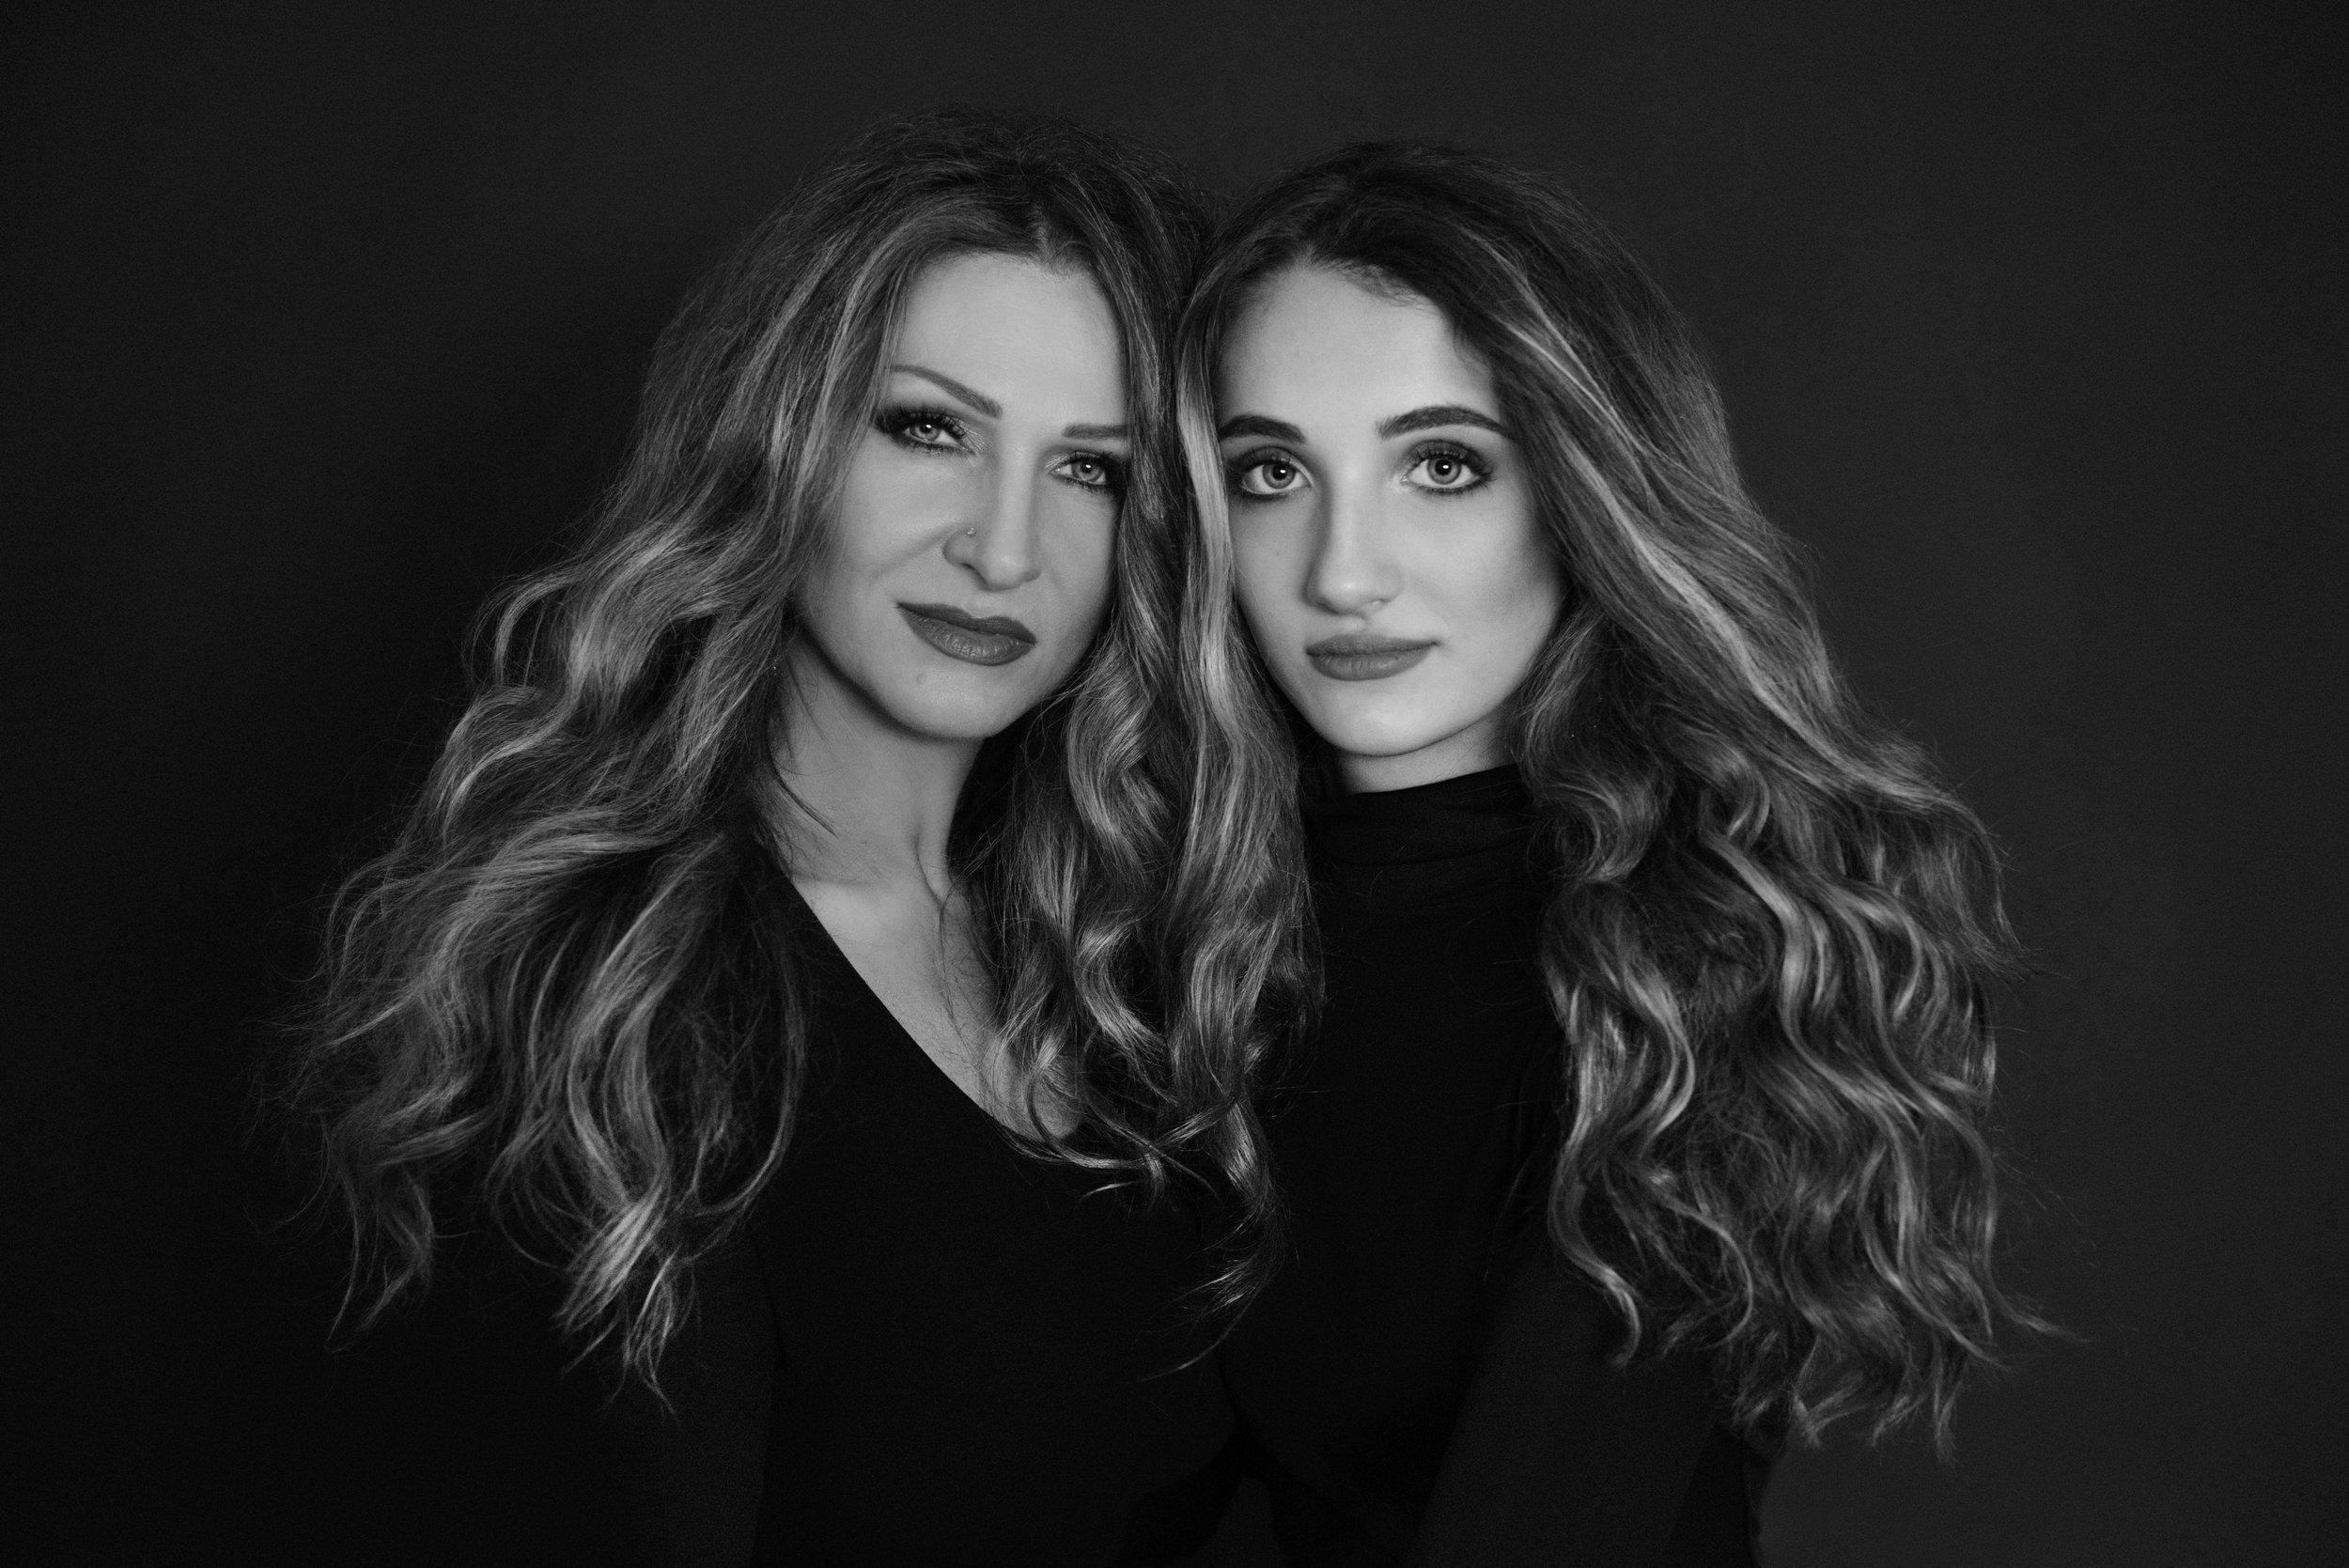 MOTHER DAUGHTER PHOTOGRAPHY MICHELLE TAYLOR PORTRAITS_-11.jpg